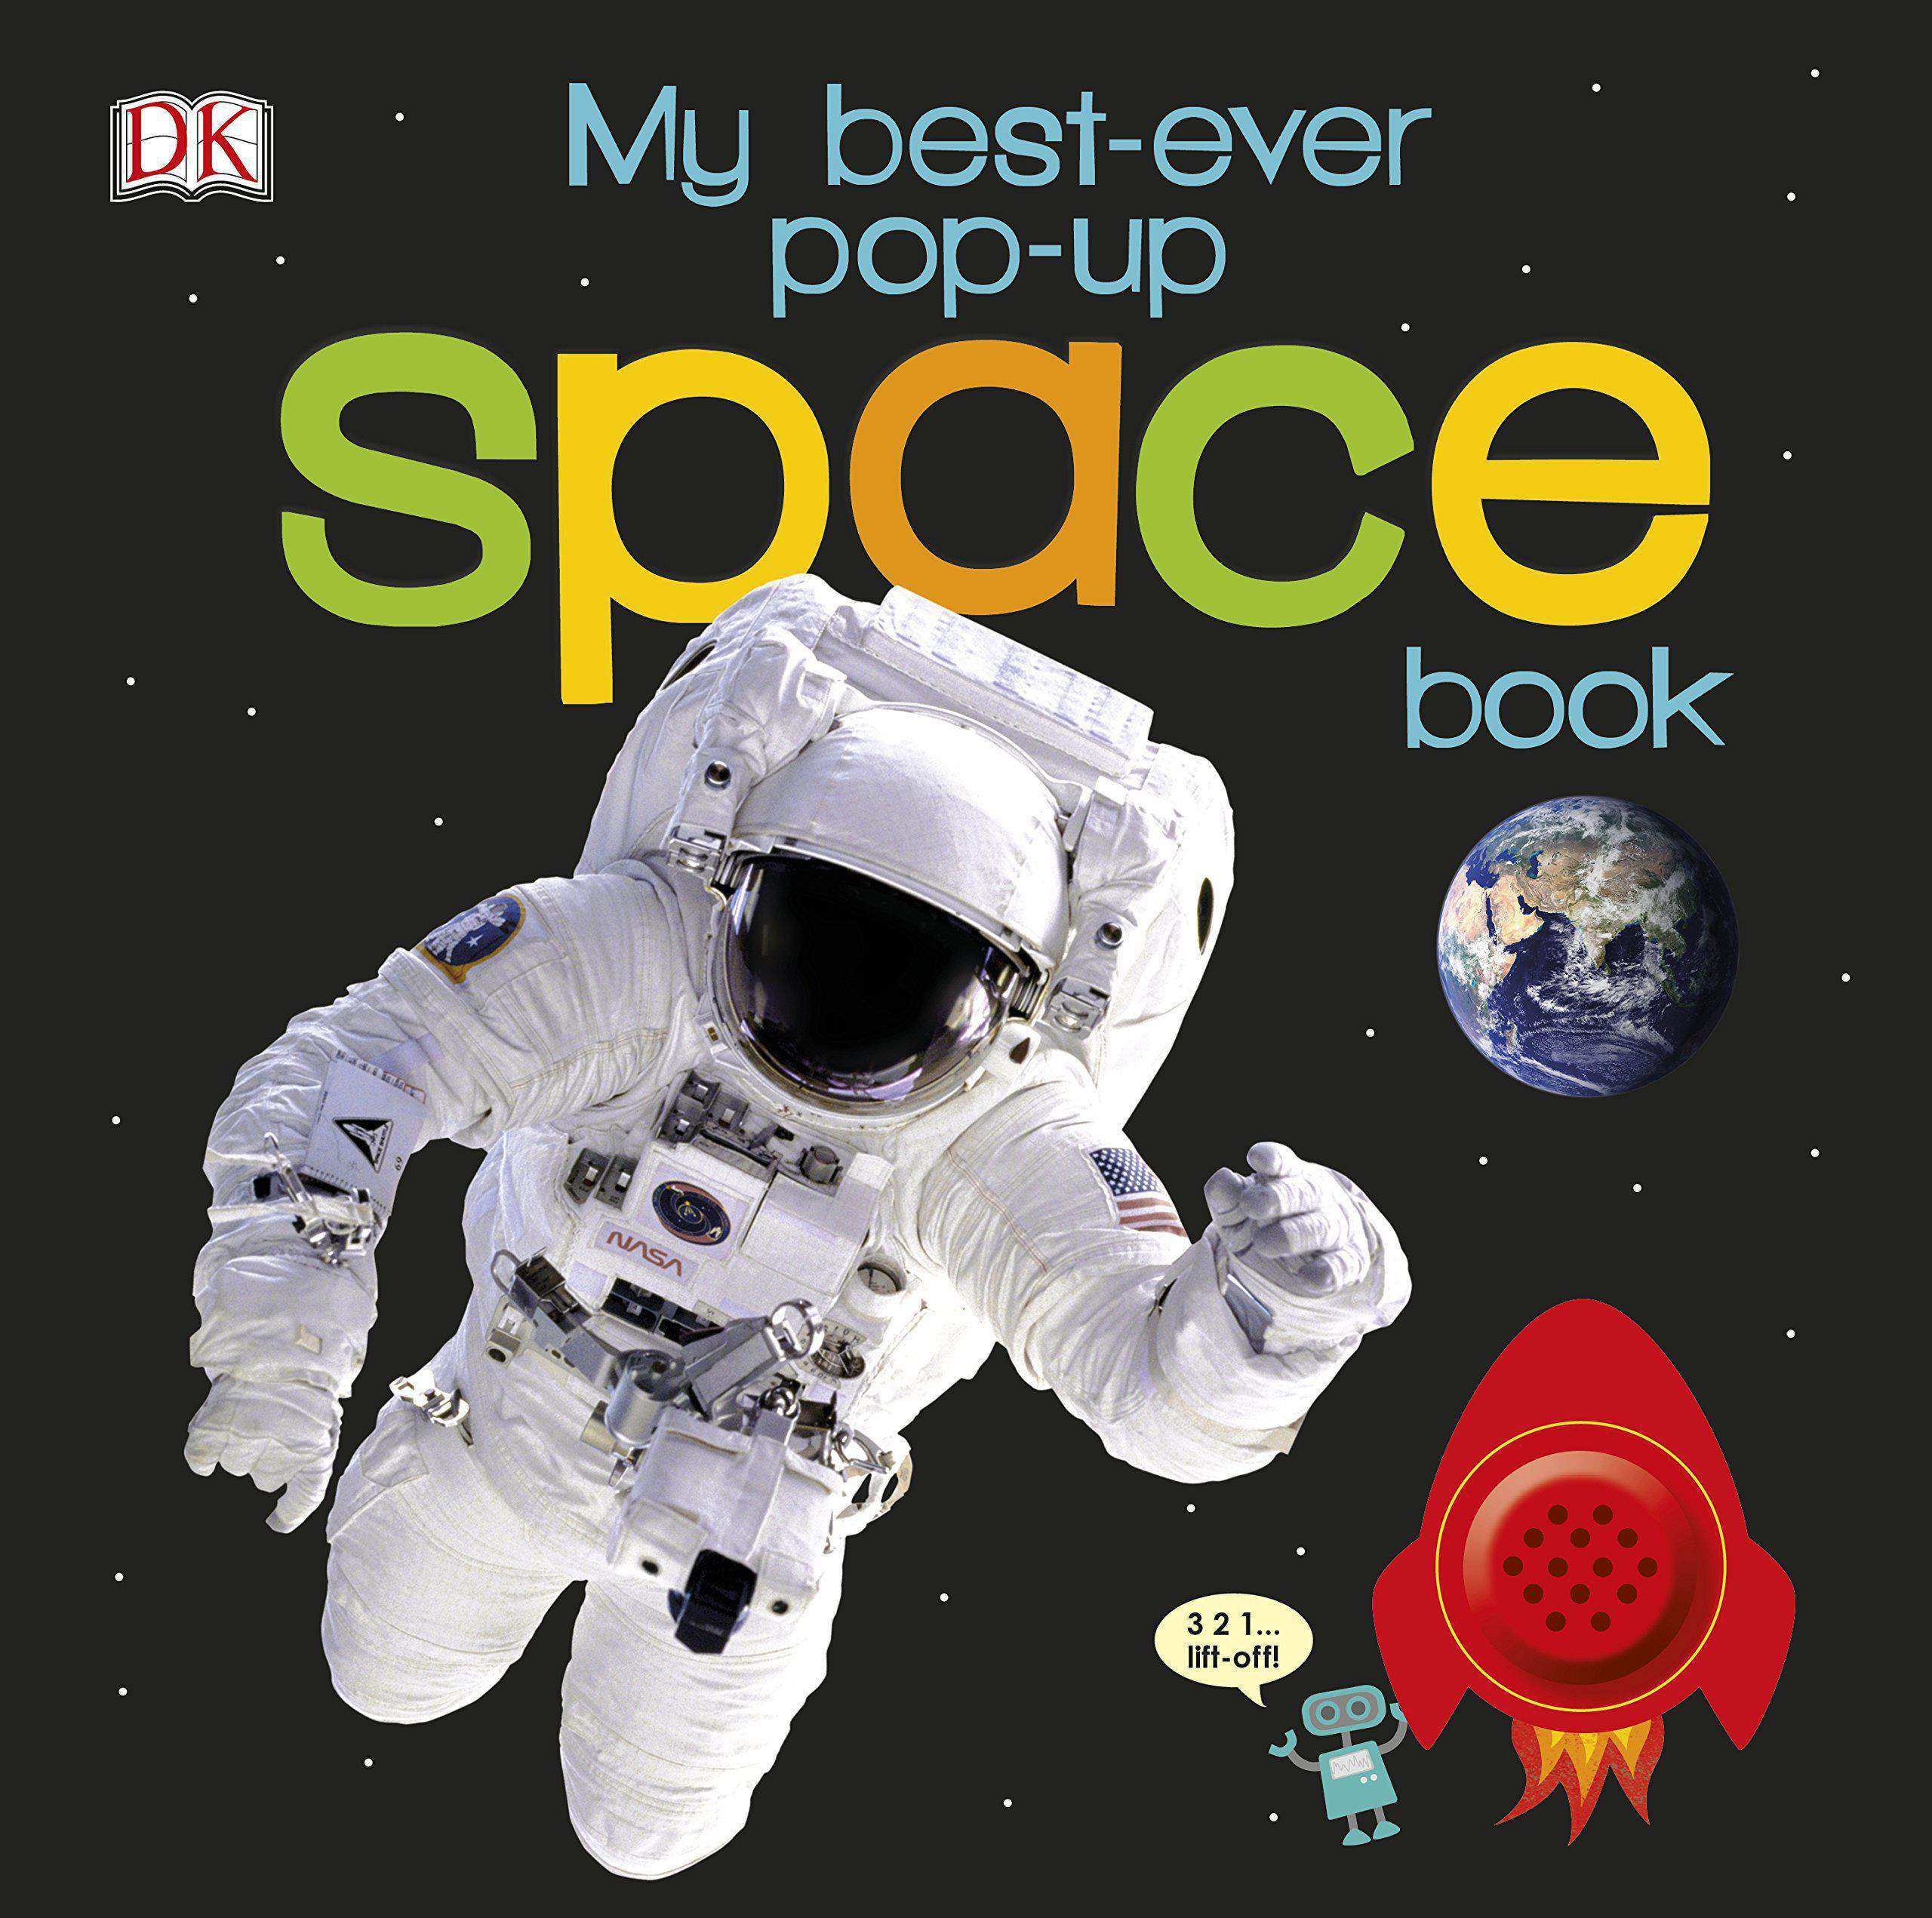 My Best-Ever Pop-Up Space Book (DK) - (HB)